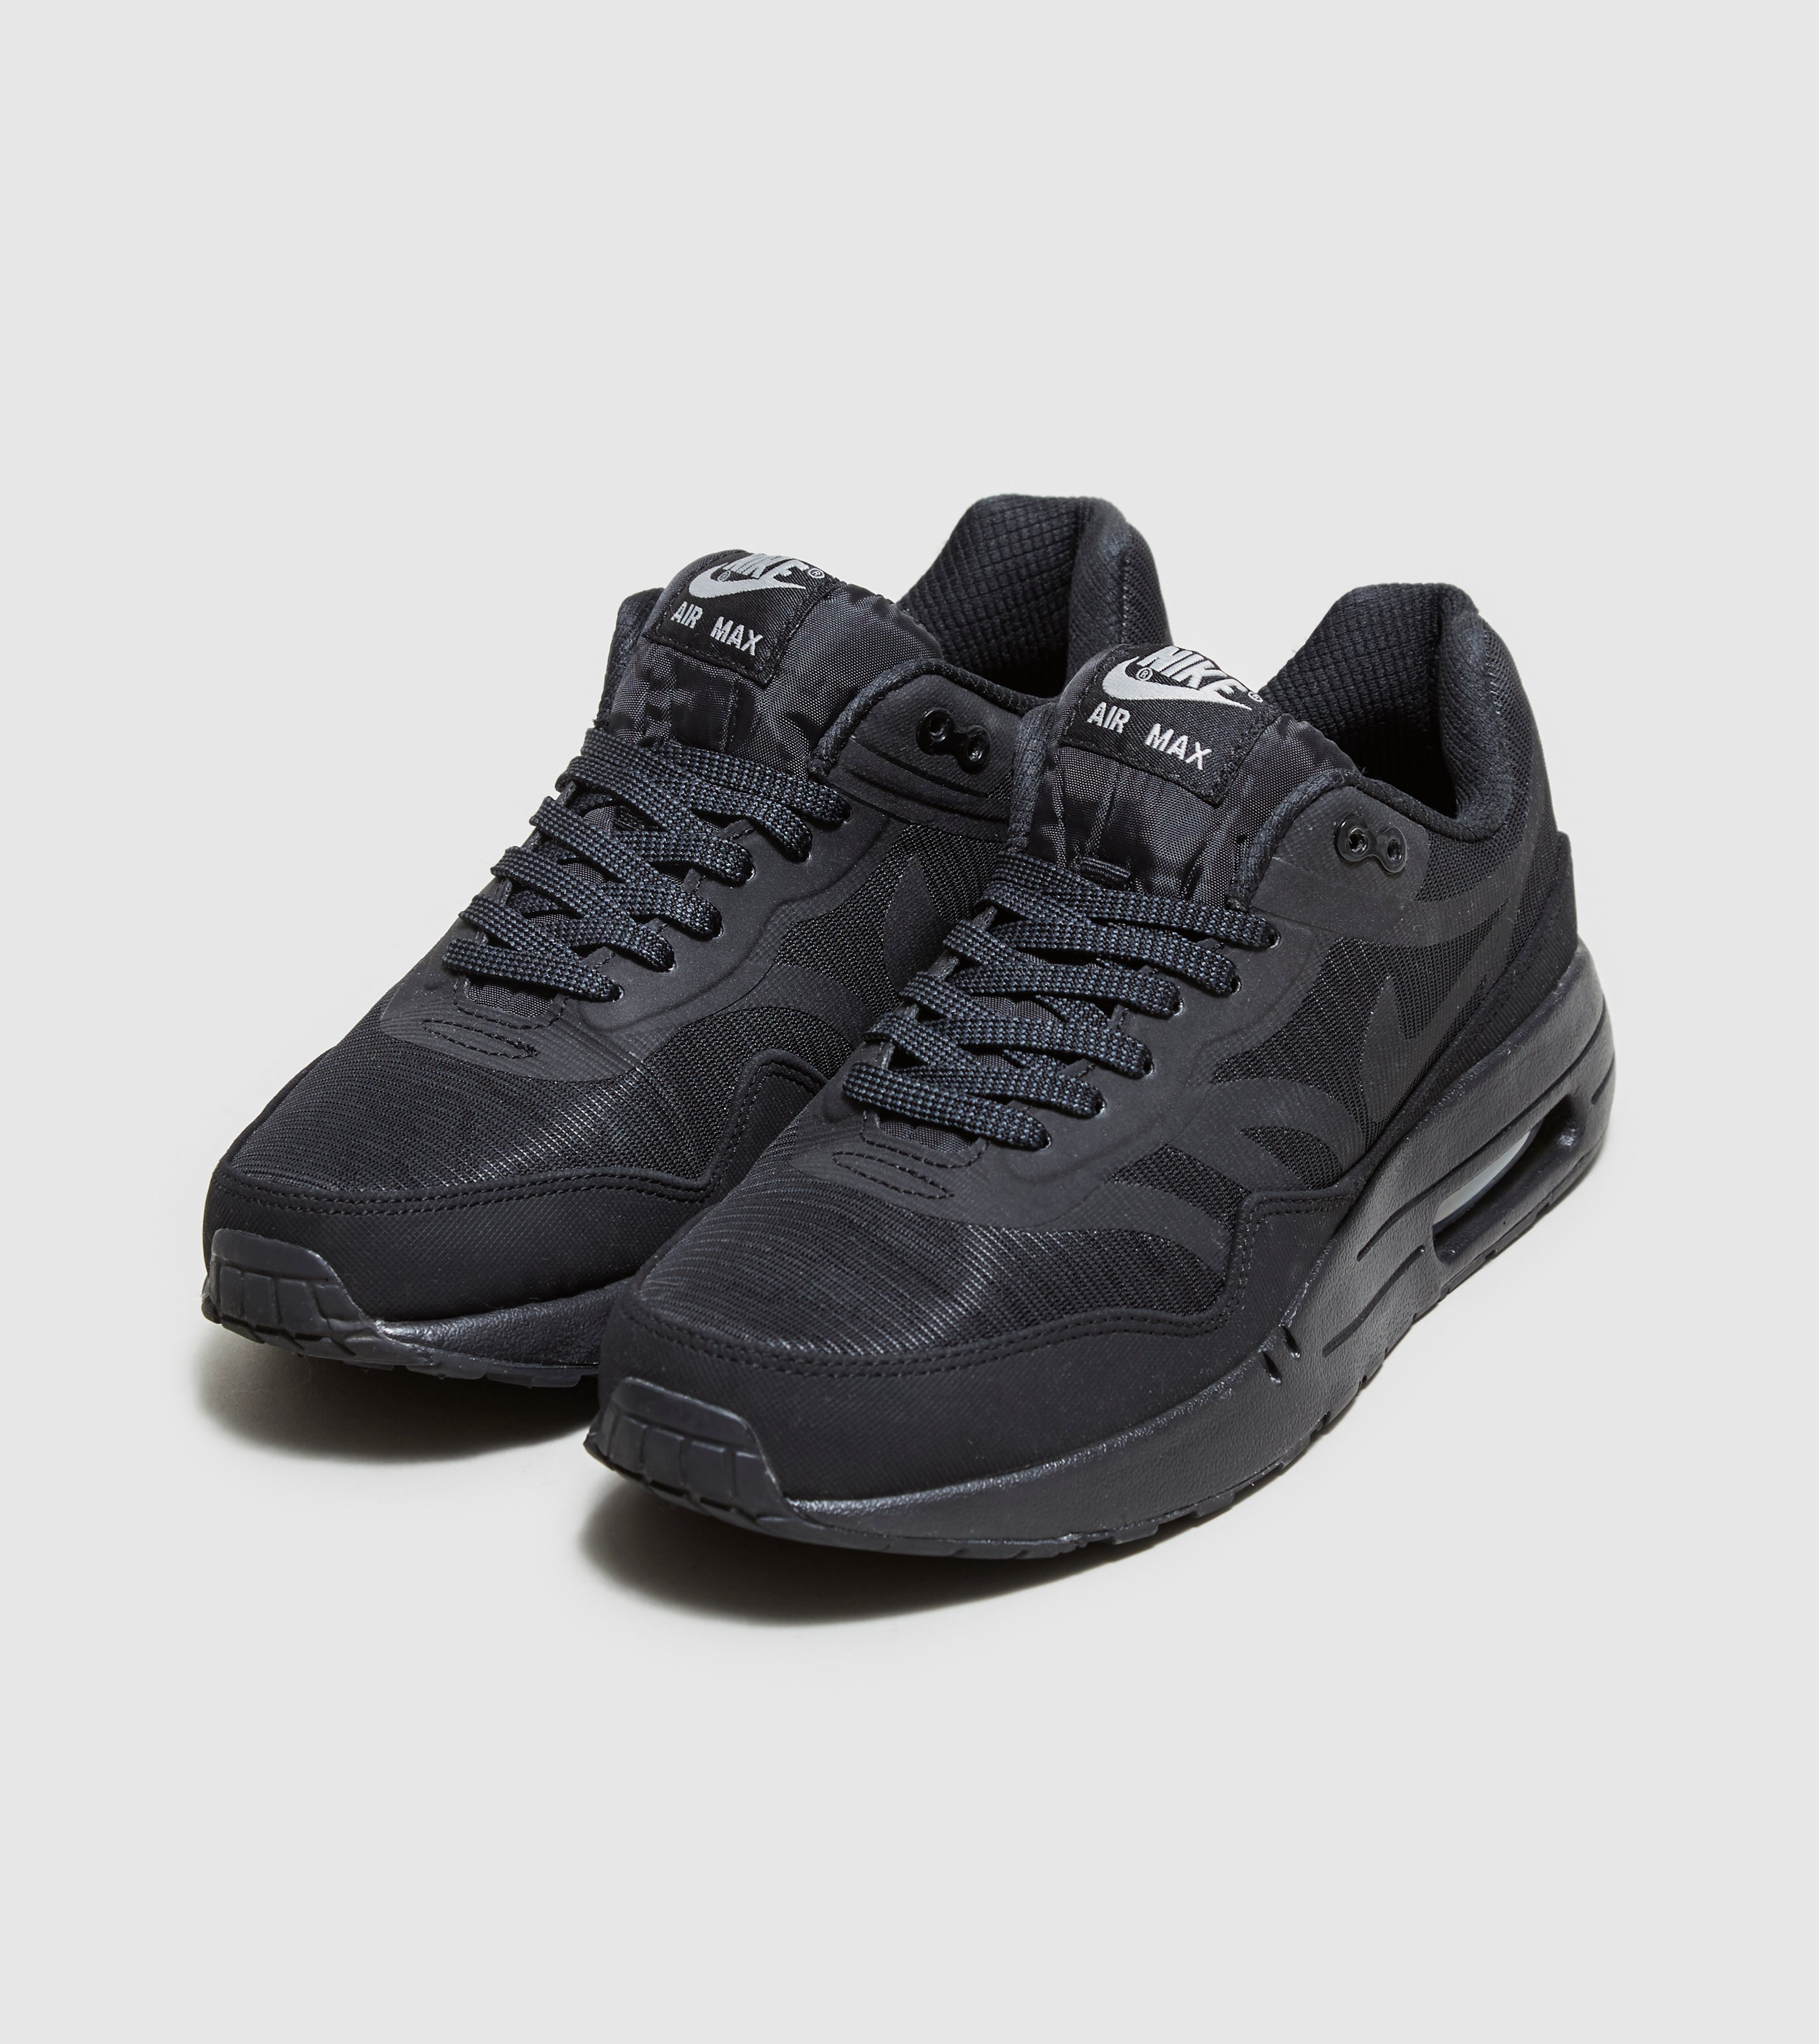 Nike Air Max 1 'Reflective Pack' | Size?